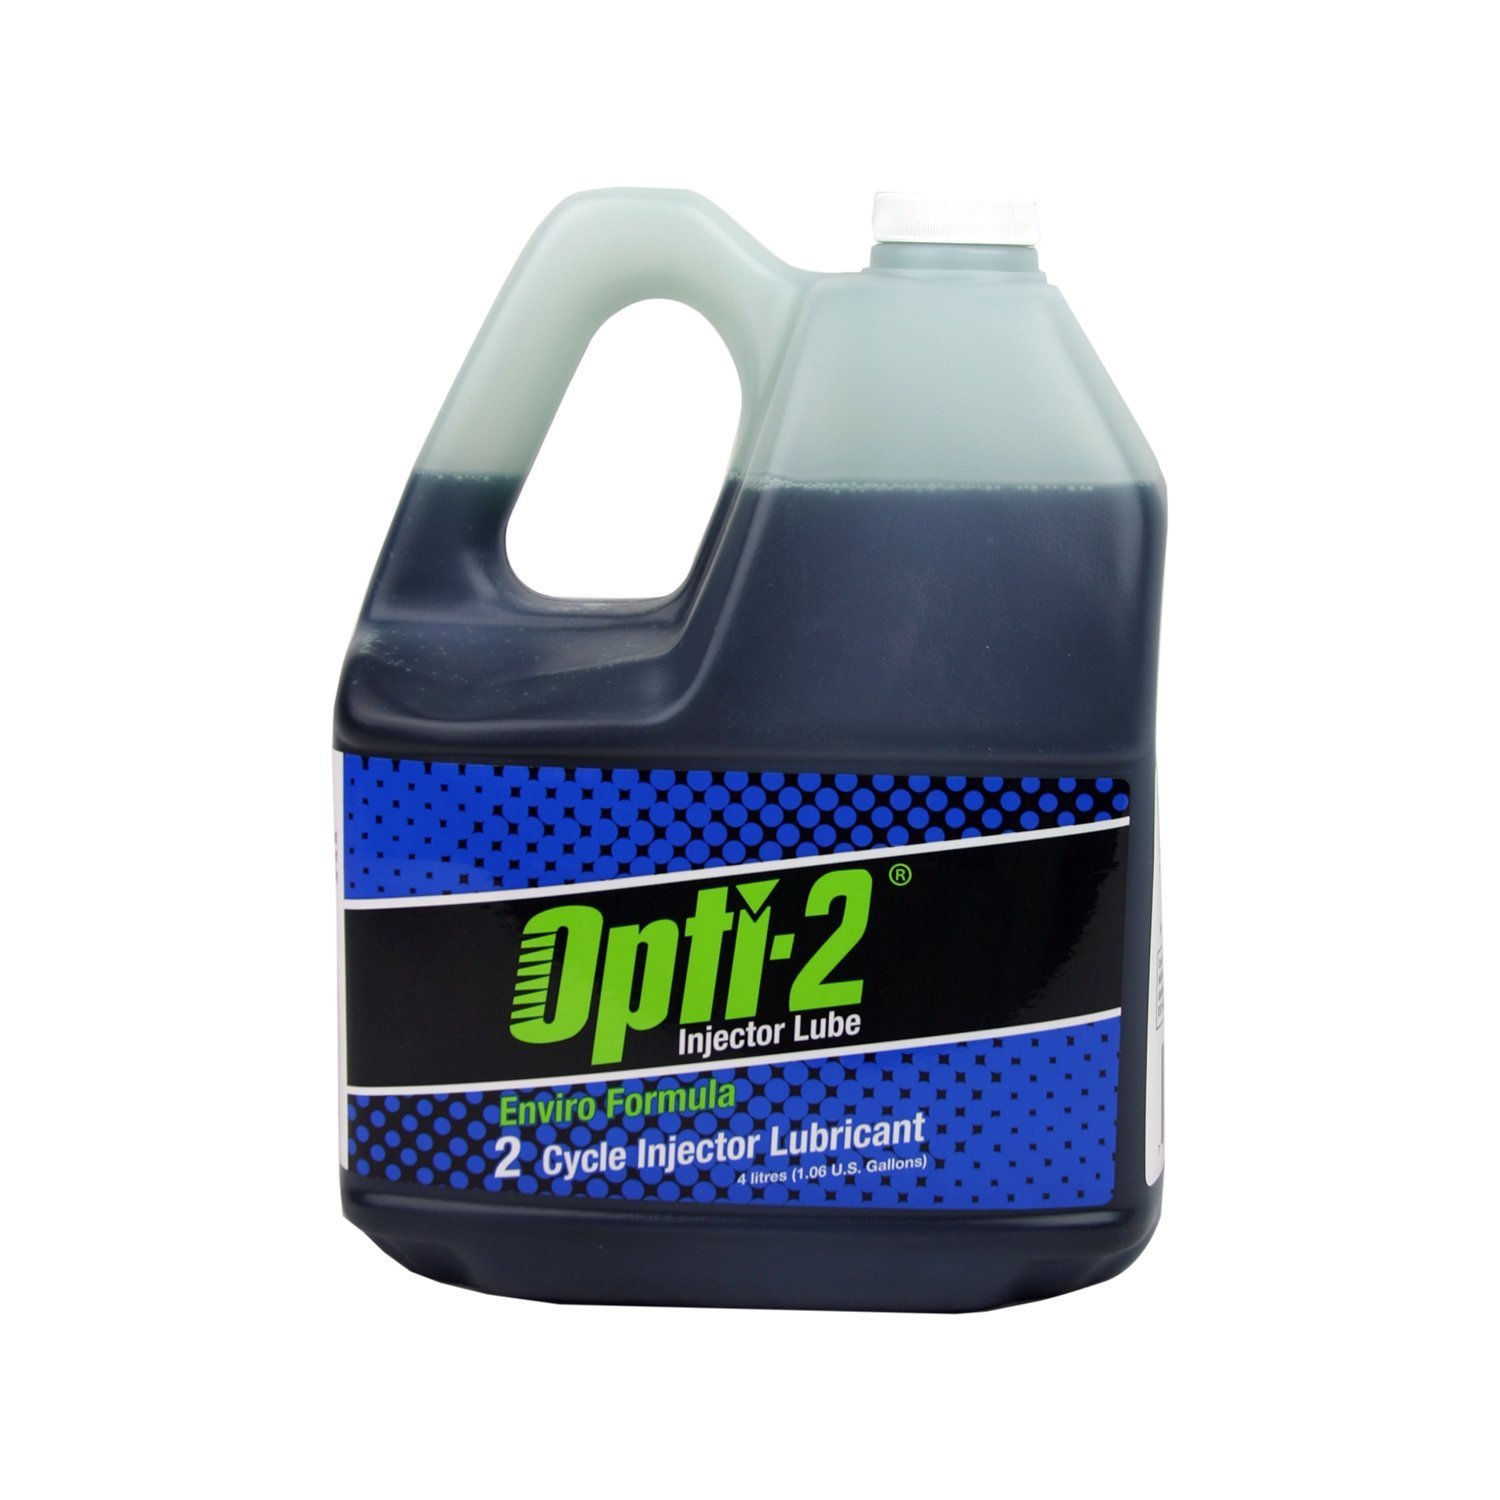 Opti-2 30044 1 Gallon Enviro Formula 2-Cycle Injector Lubricant